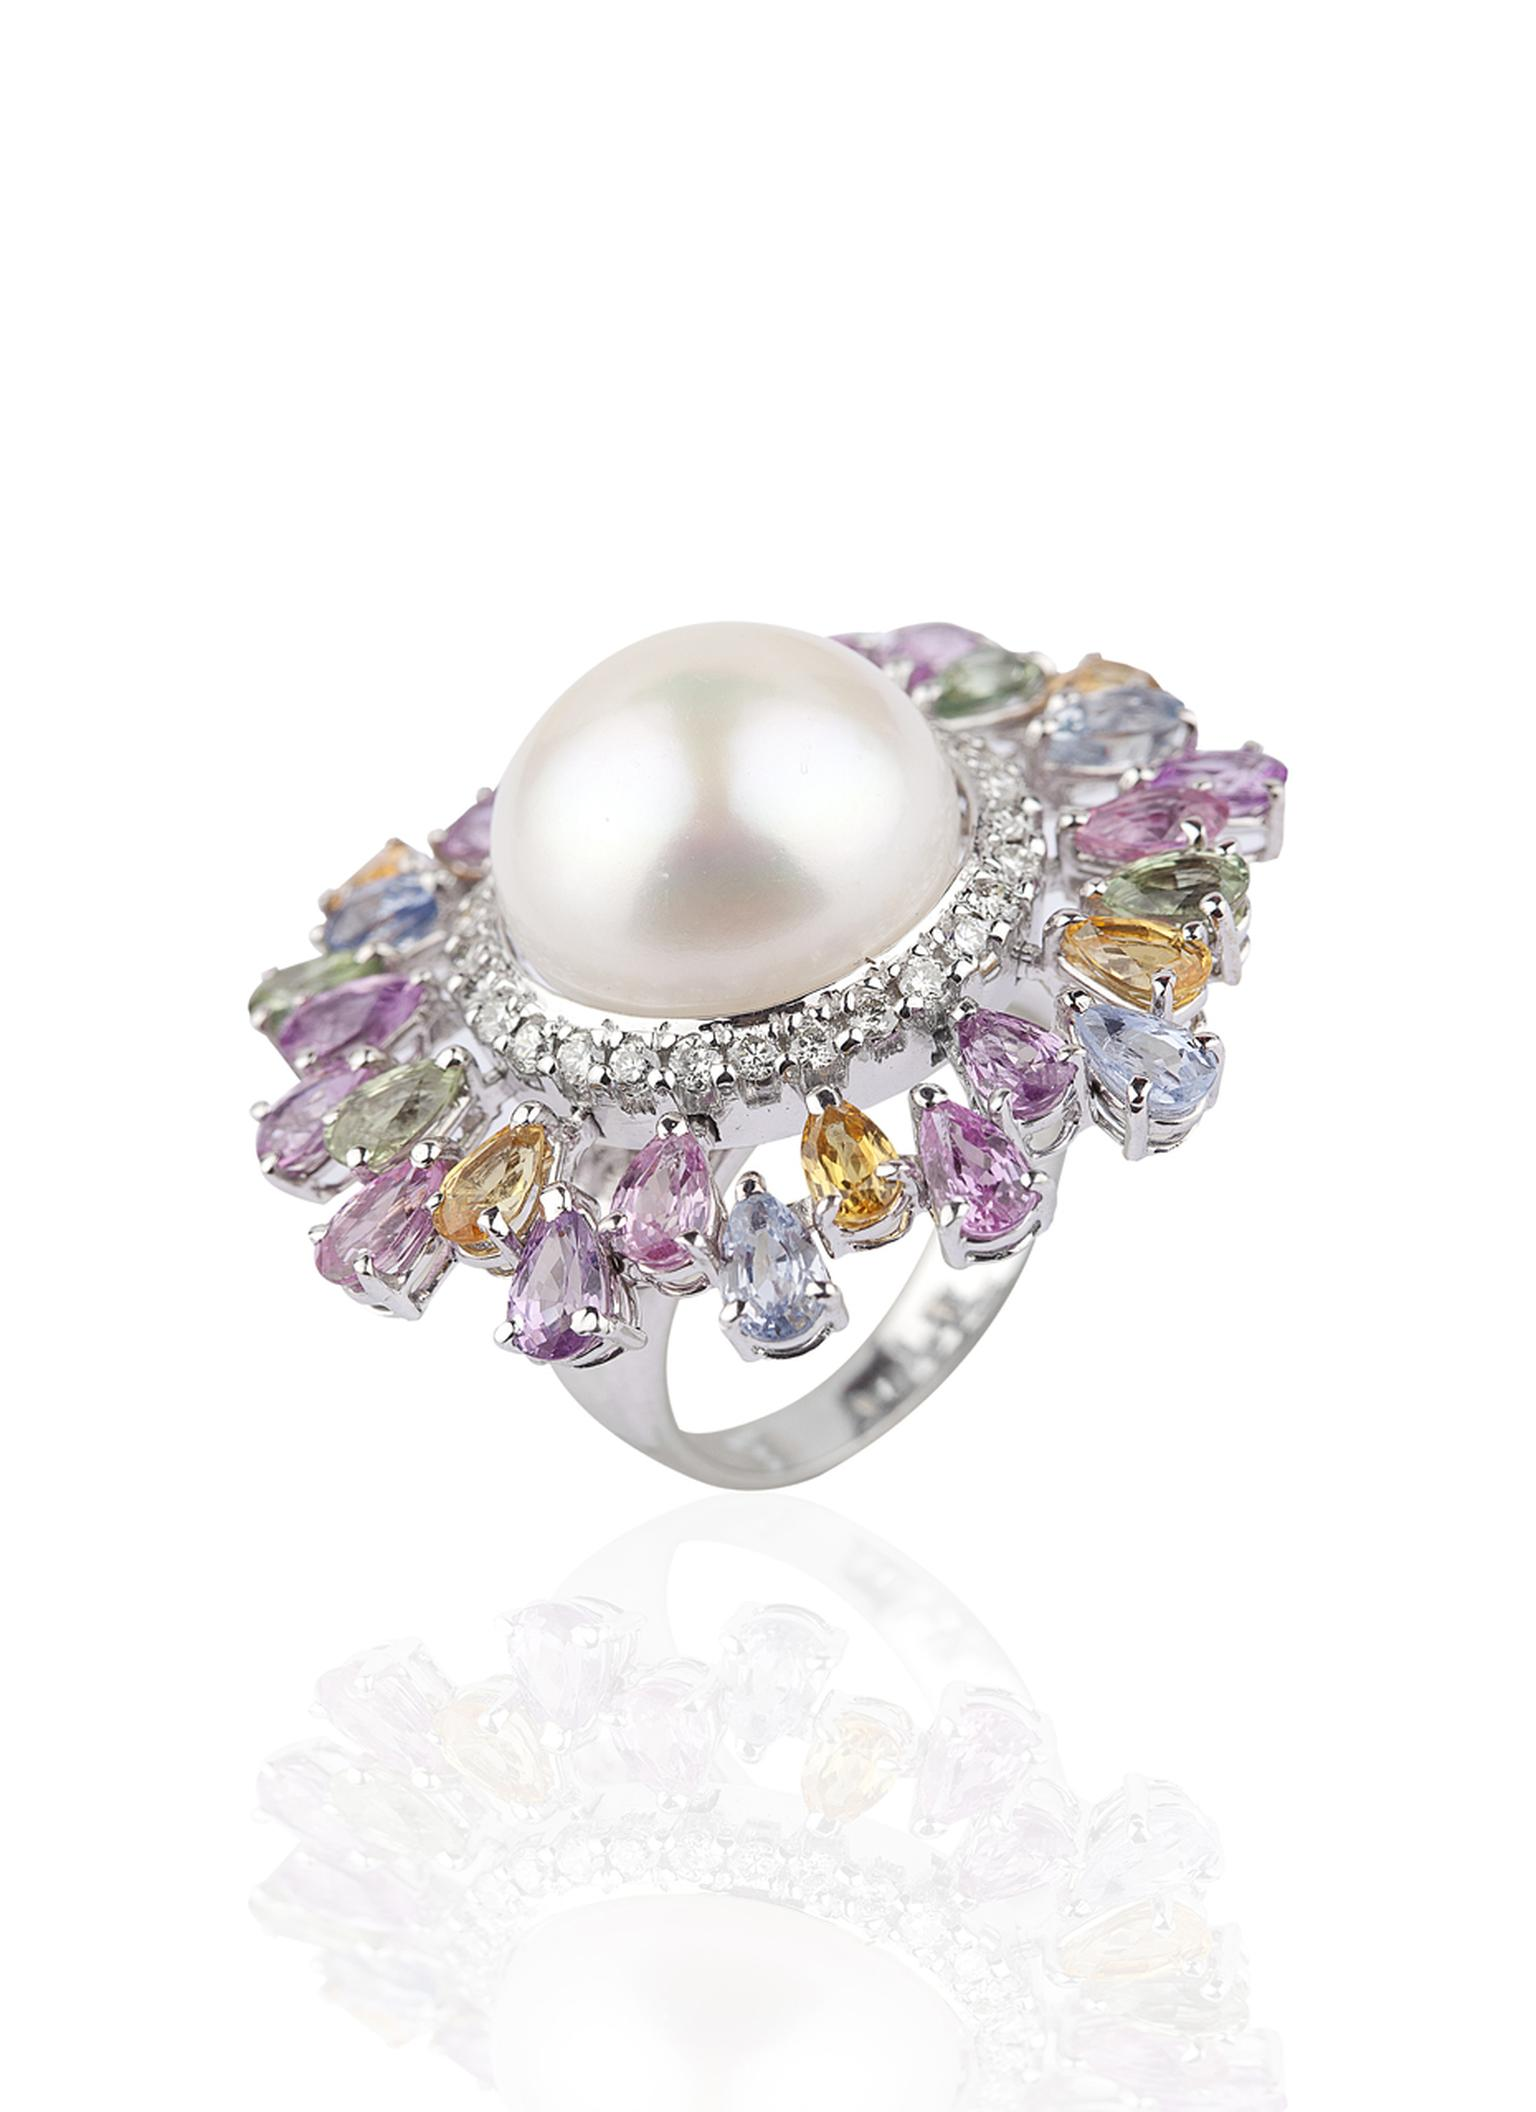 Mirari white gold ring featuring multi-coloured sapphires and round brilliant cut diamonds surrounding a freshwater button pearl.